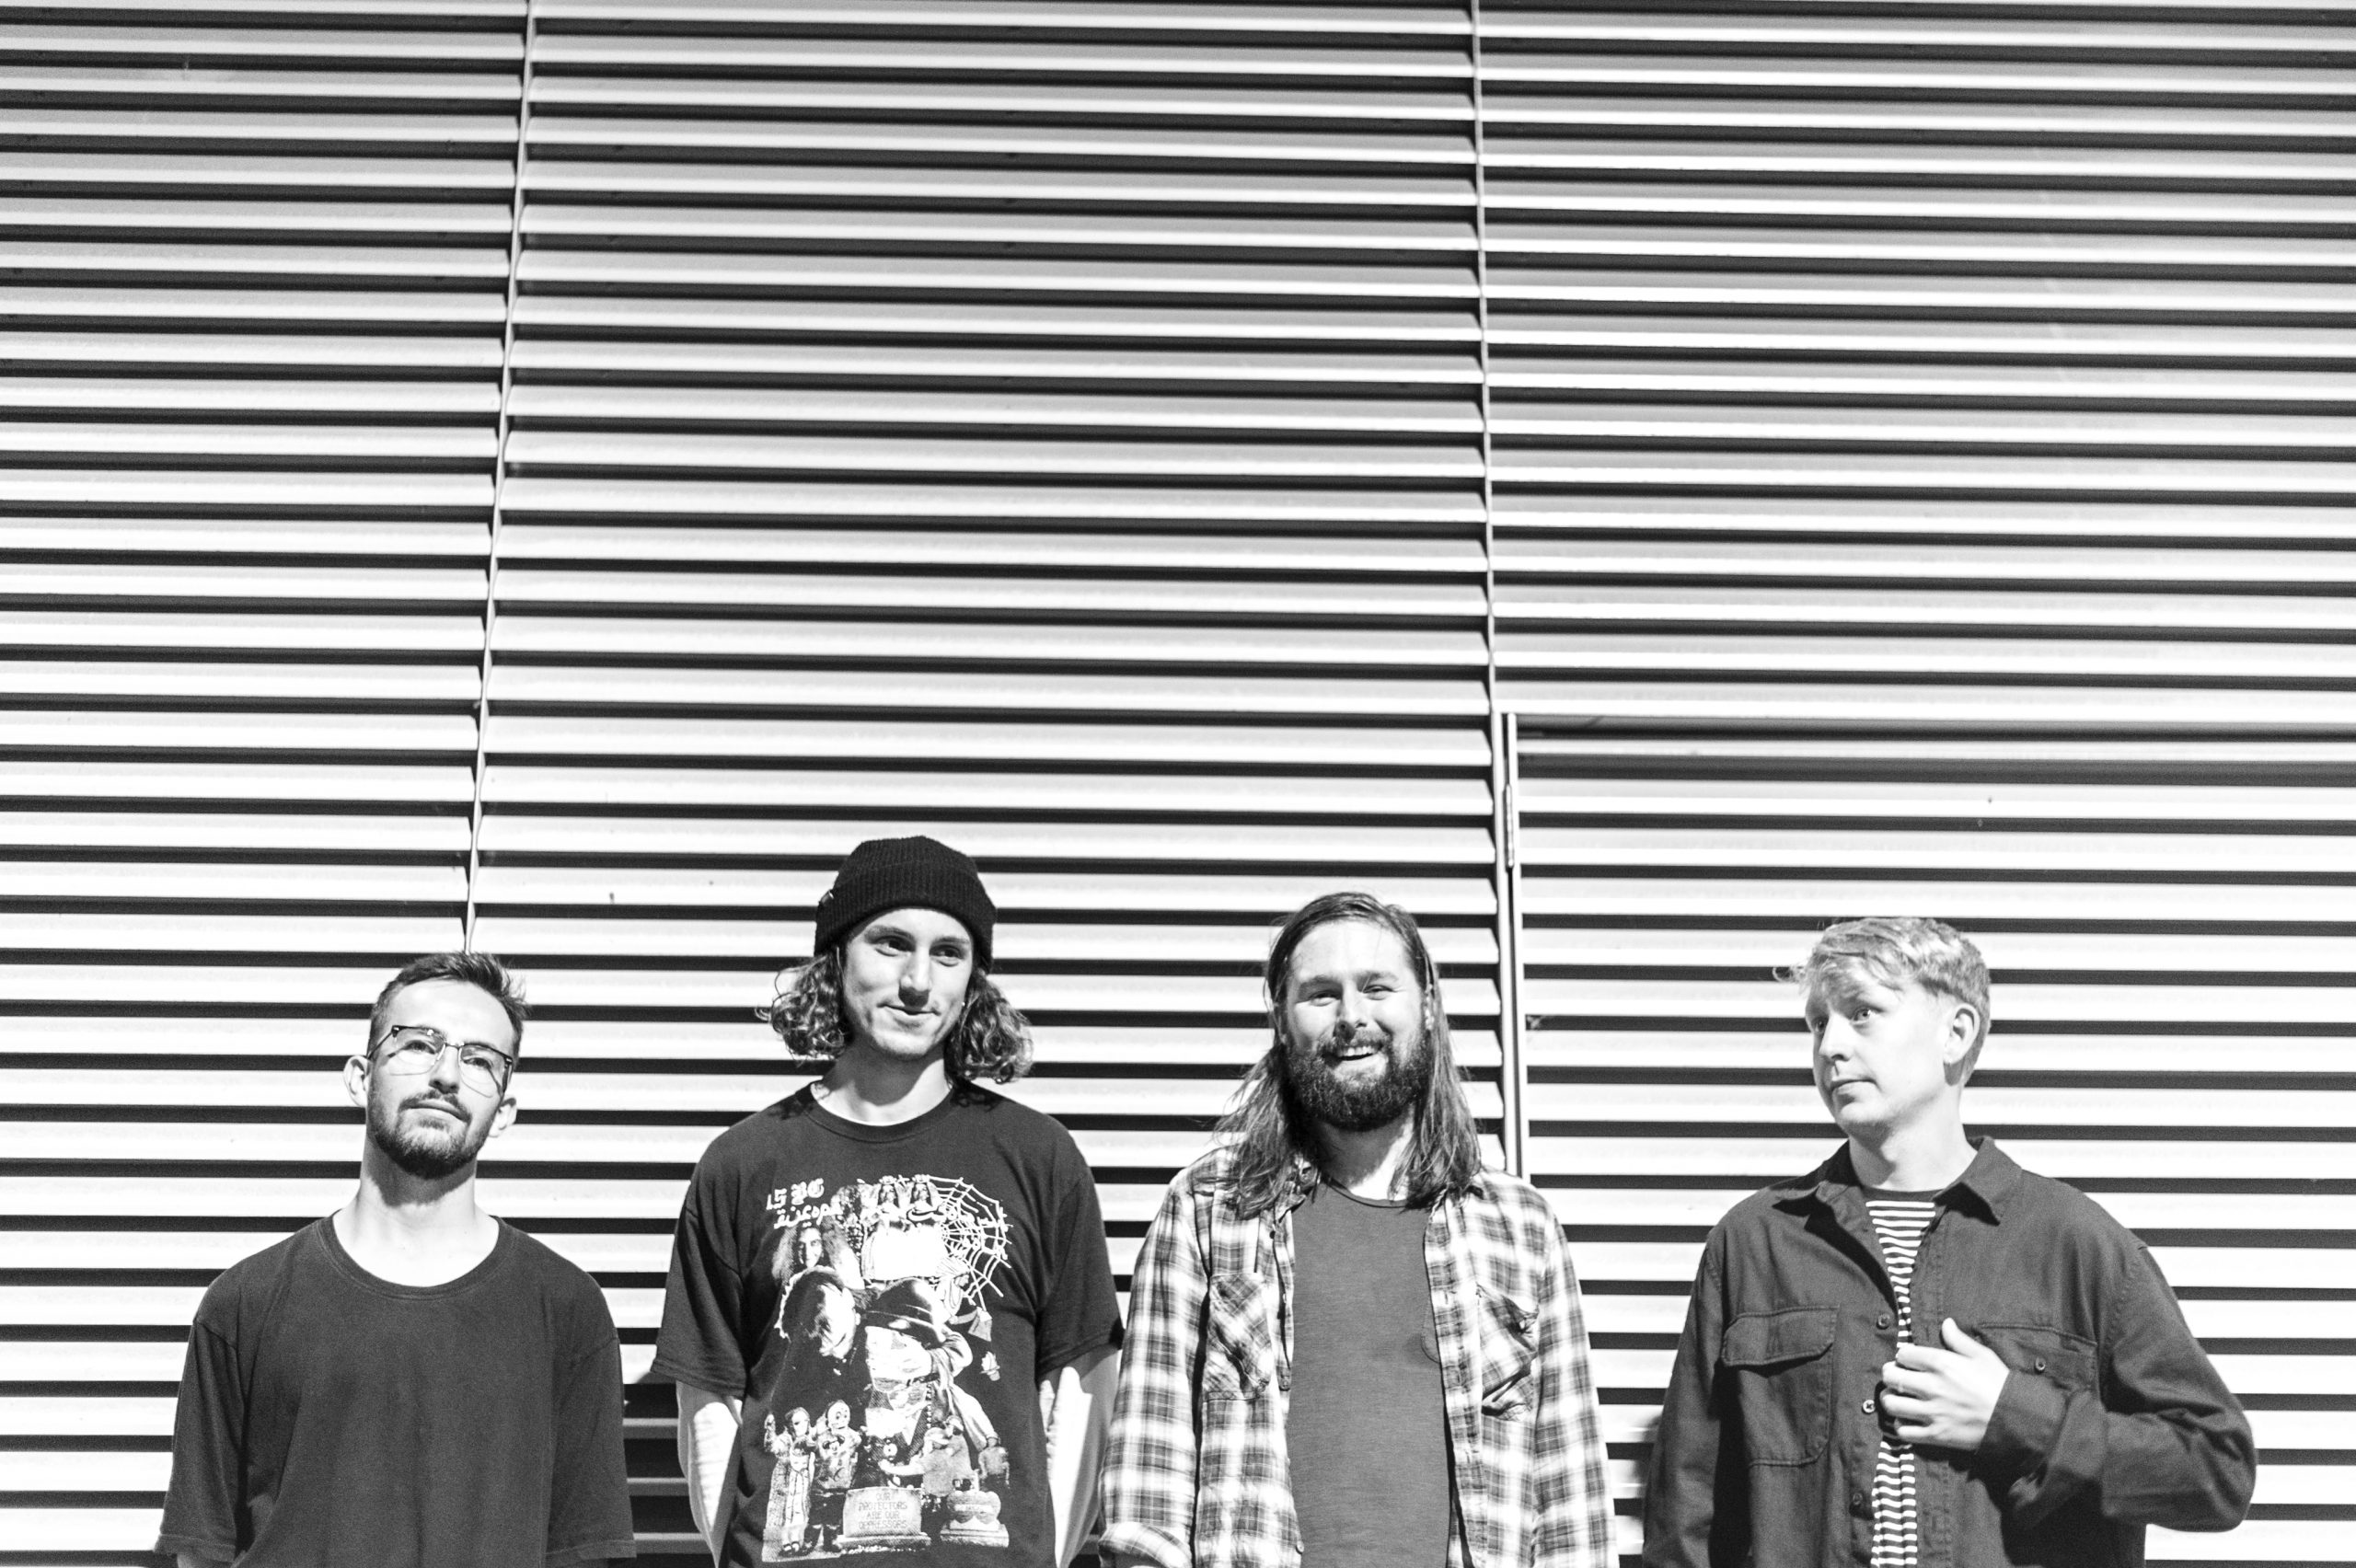 """Modern Rituals Conclude That """"Them Days is Gone"""" in Nostalgic New Video"""